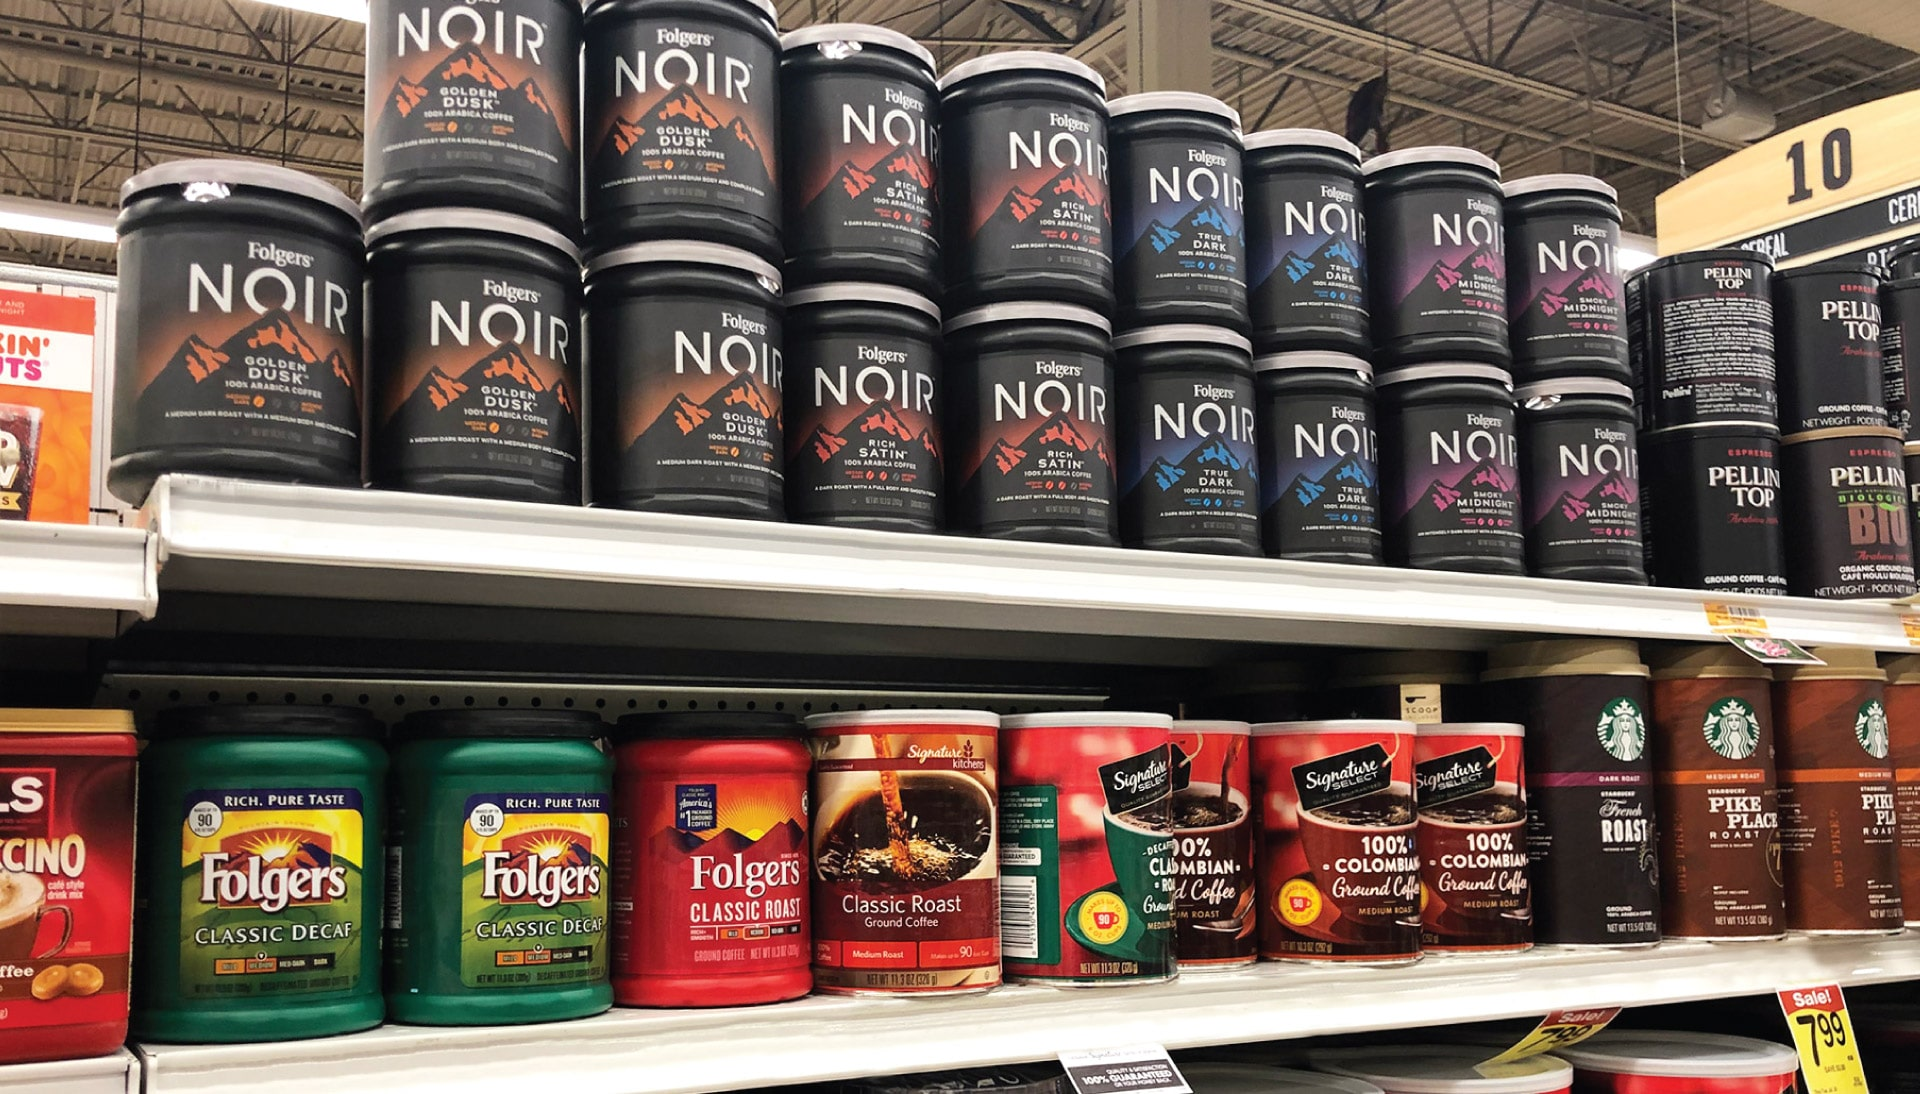 Folgers Noir - In-Store Packaging